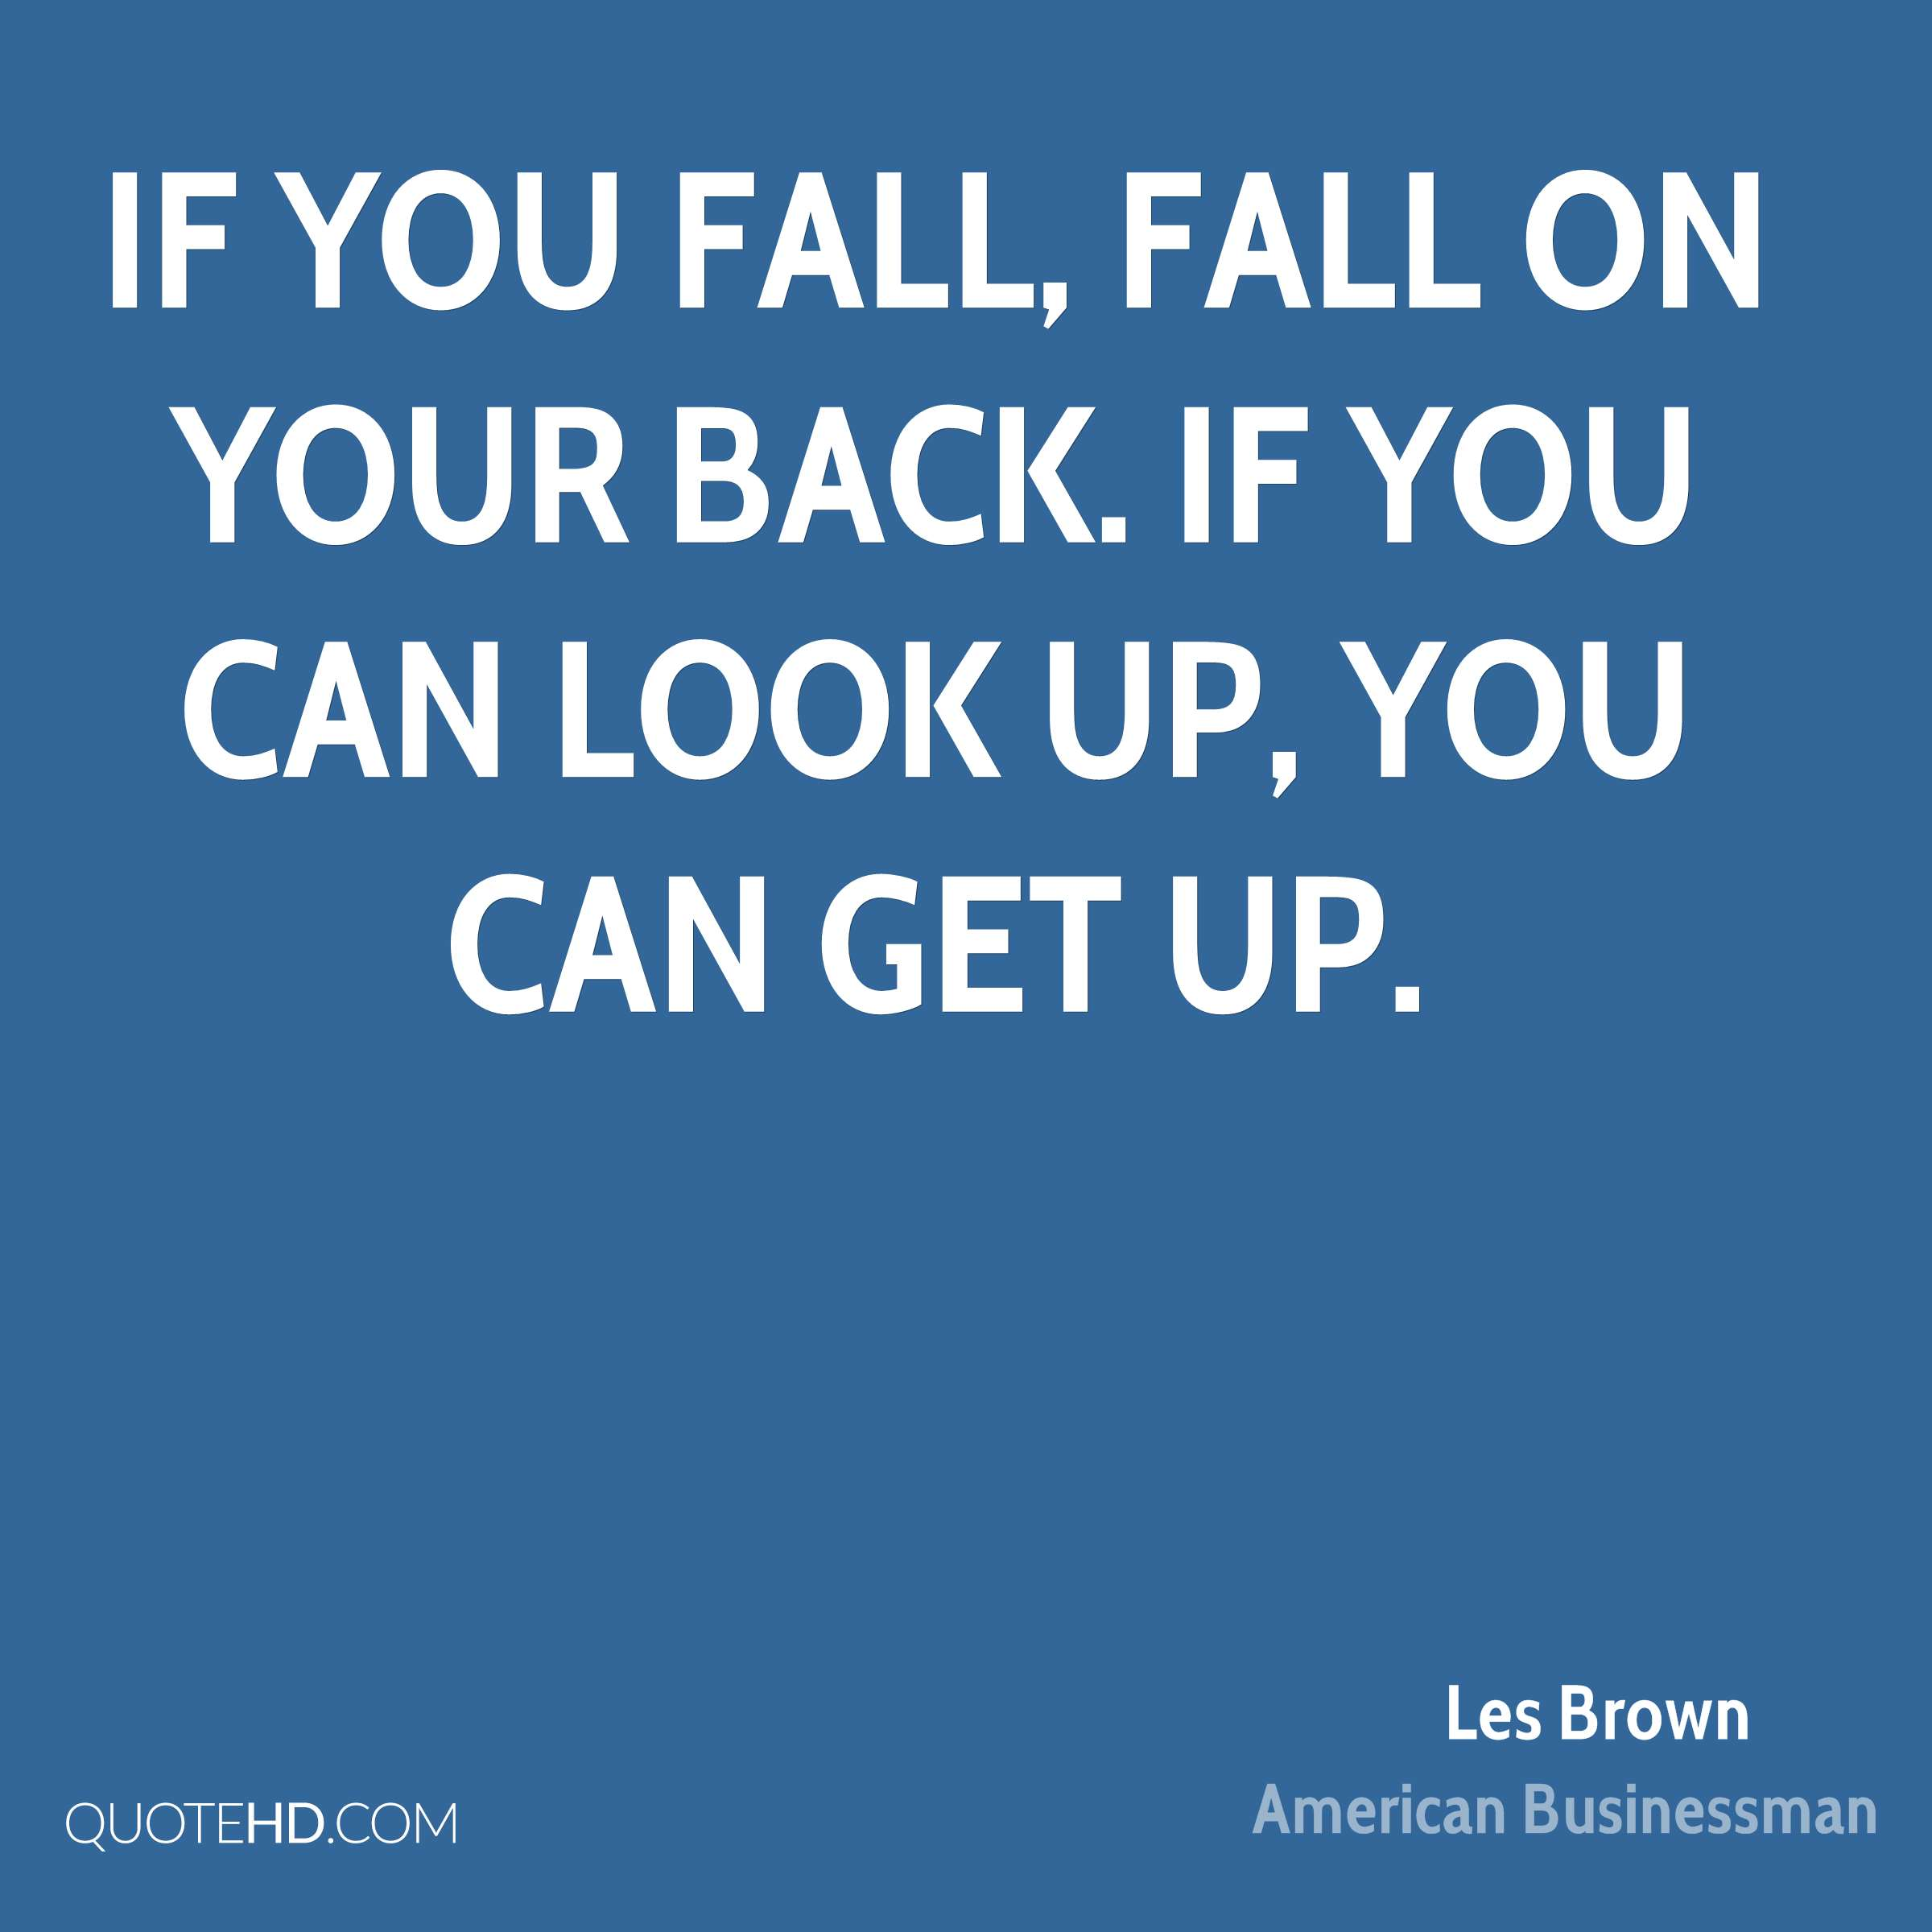 If you fall, fall on your back. If you can look up, you can get up.